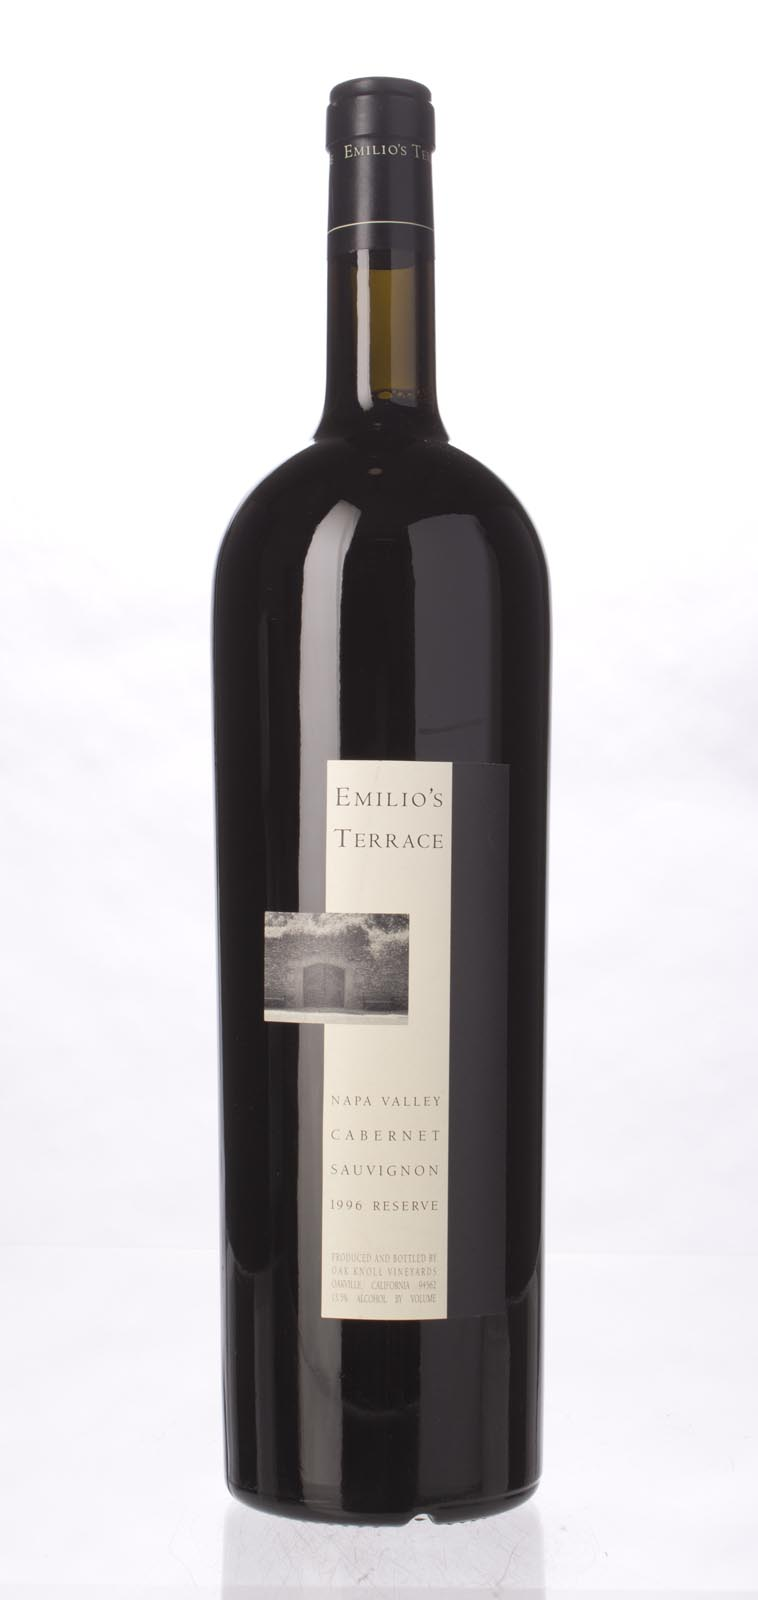 Emilio`s Terrace Cabernet Sauvignon Reserve 1996, 1.5L (WS92) from The BPW - Merchants of rare and fine wines.